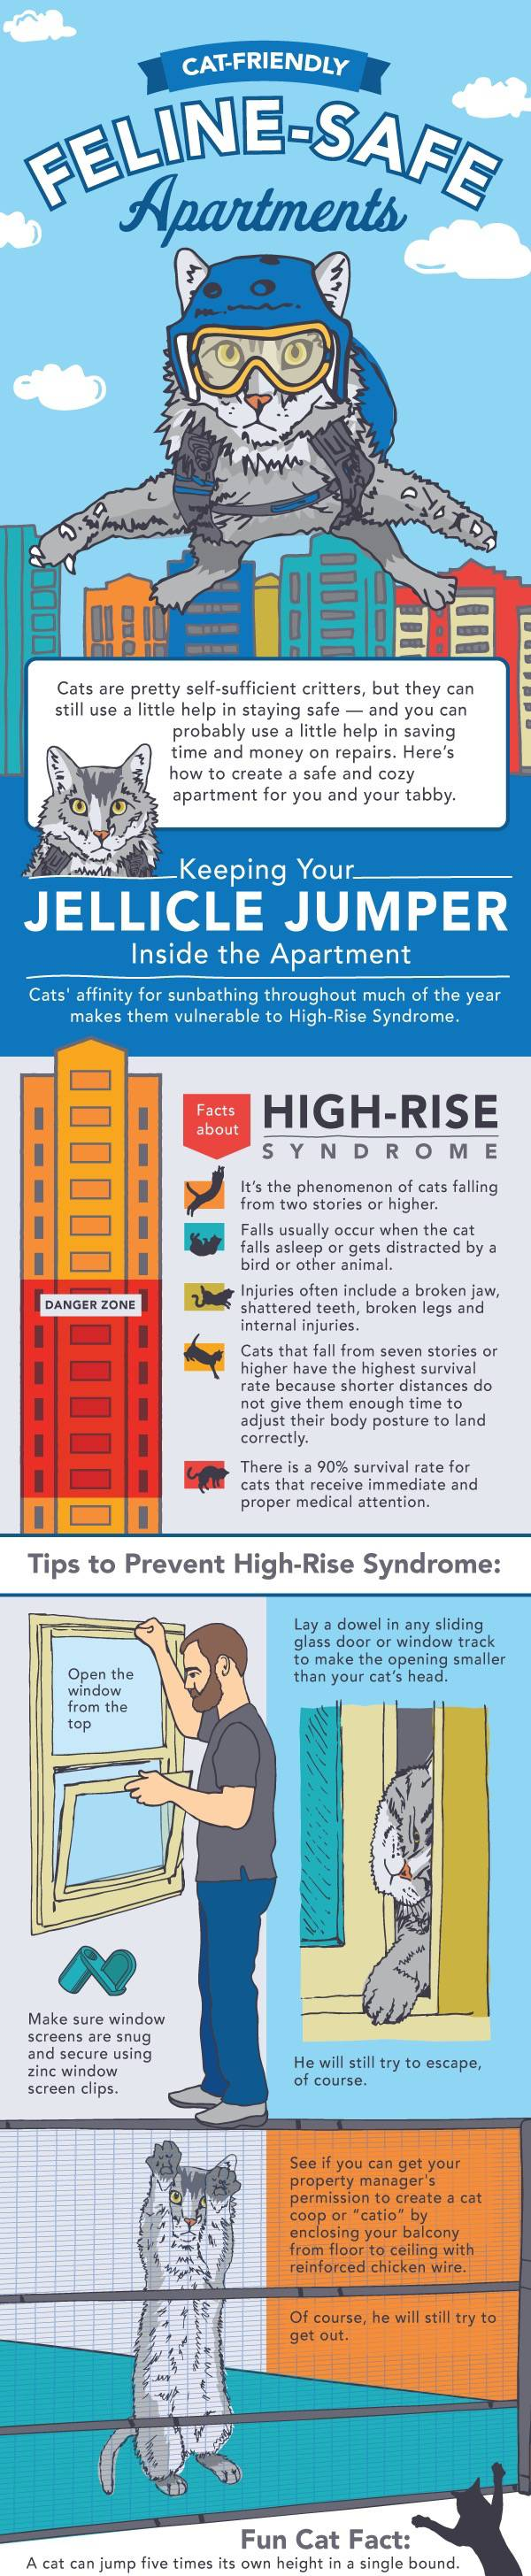 Cat Friendly Feline Safe Apartment, High-Rise Syndrome